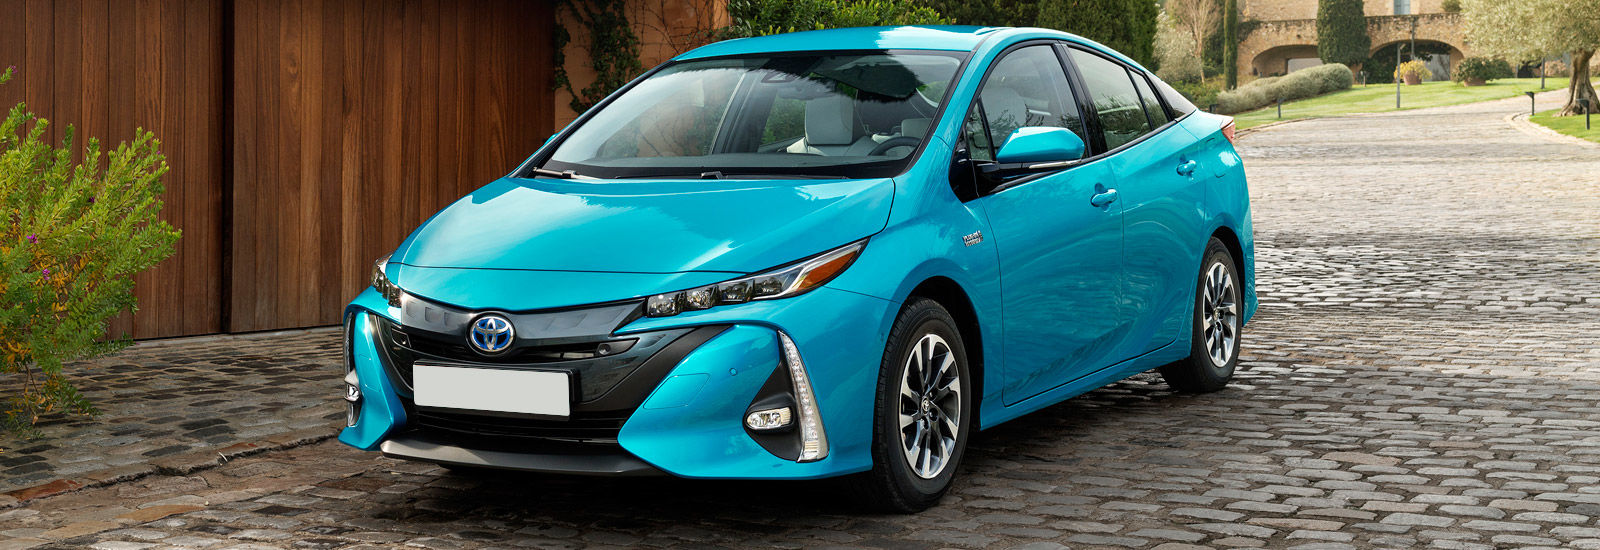 2017 toyota prius plug in price specs release date carwow. Black Bedroom Furniture Sets. Home Design Ideas